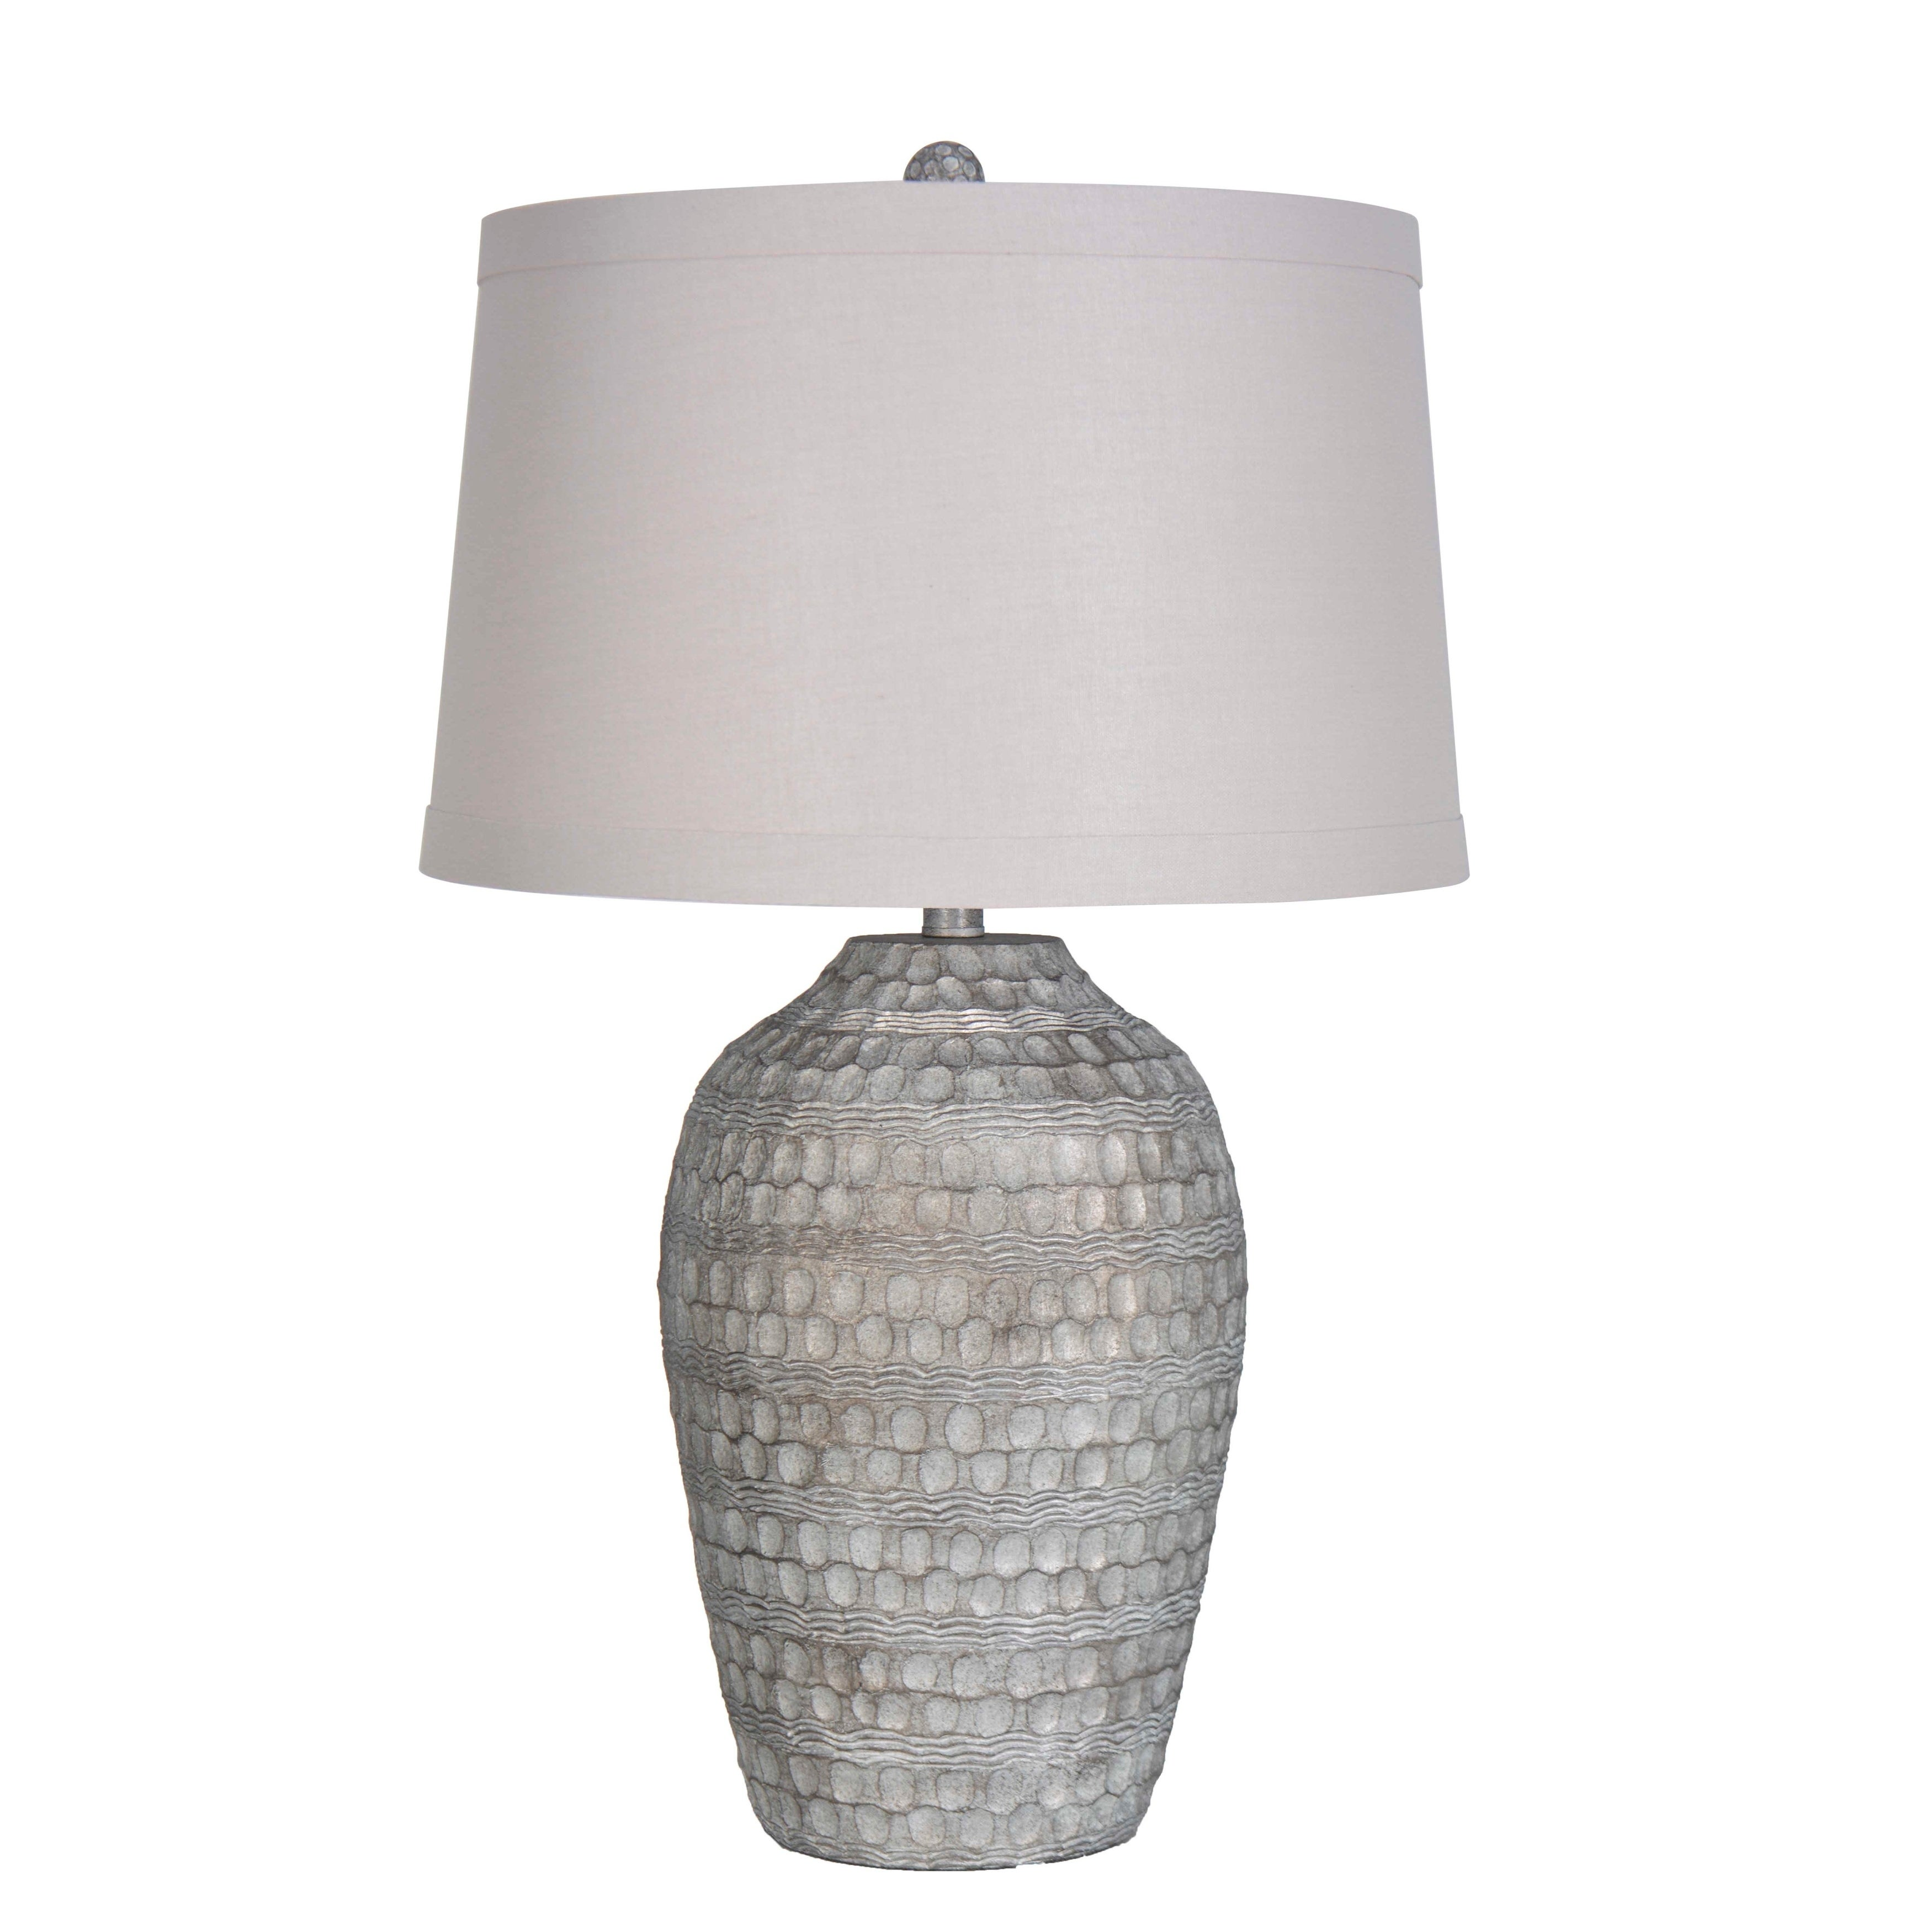 Lamps Per Se 27 875 Inch Antique Silver With White Wash Table Lamp Set Of 2 N A